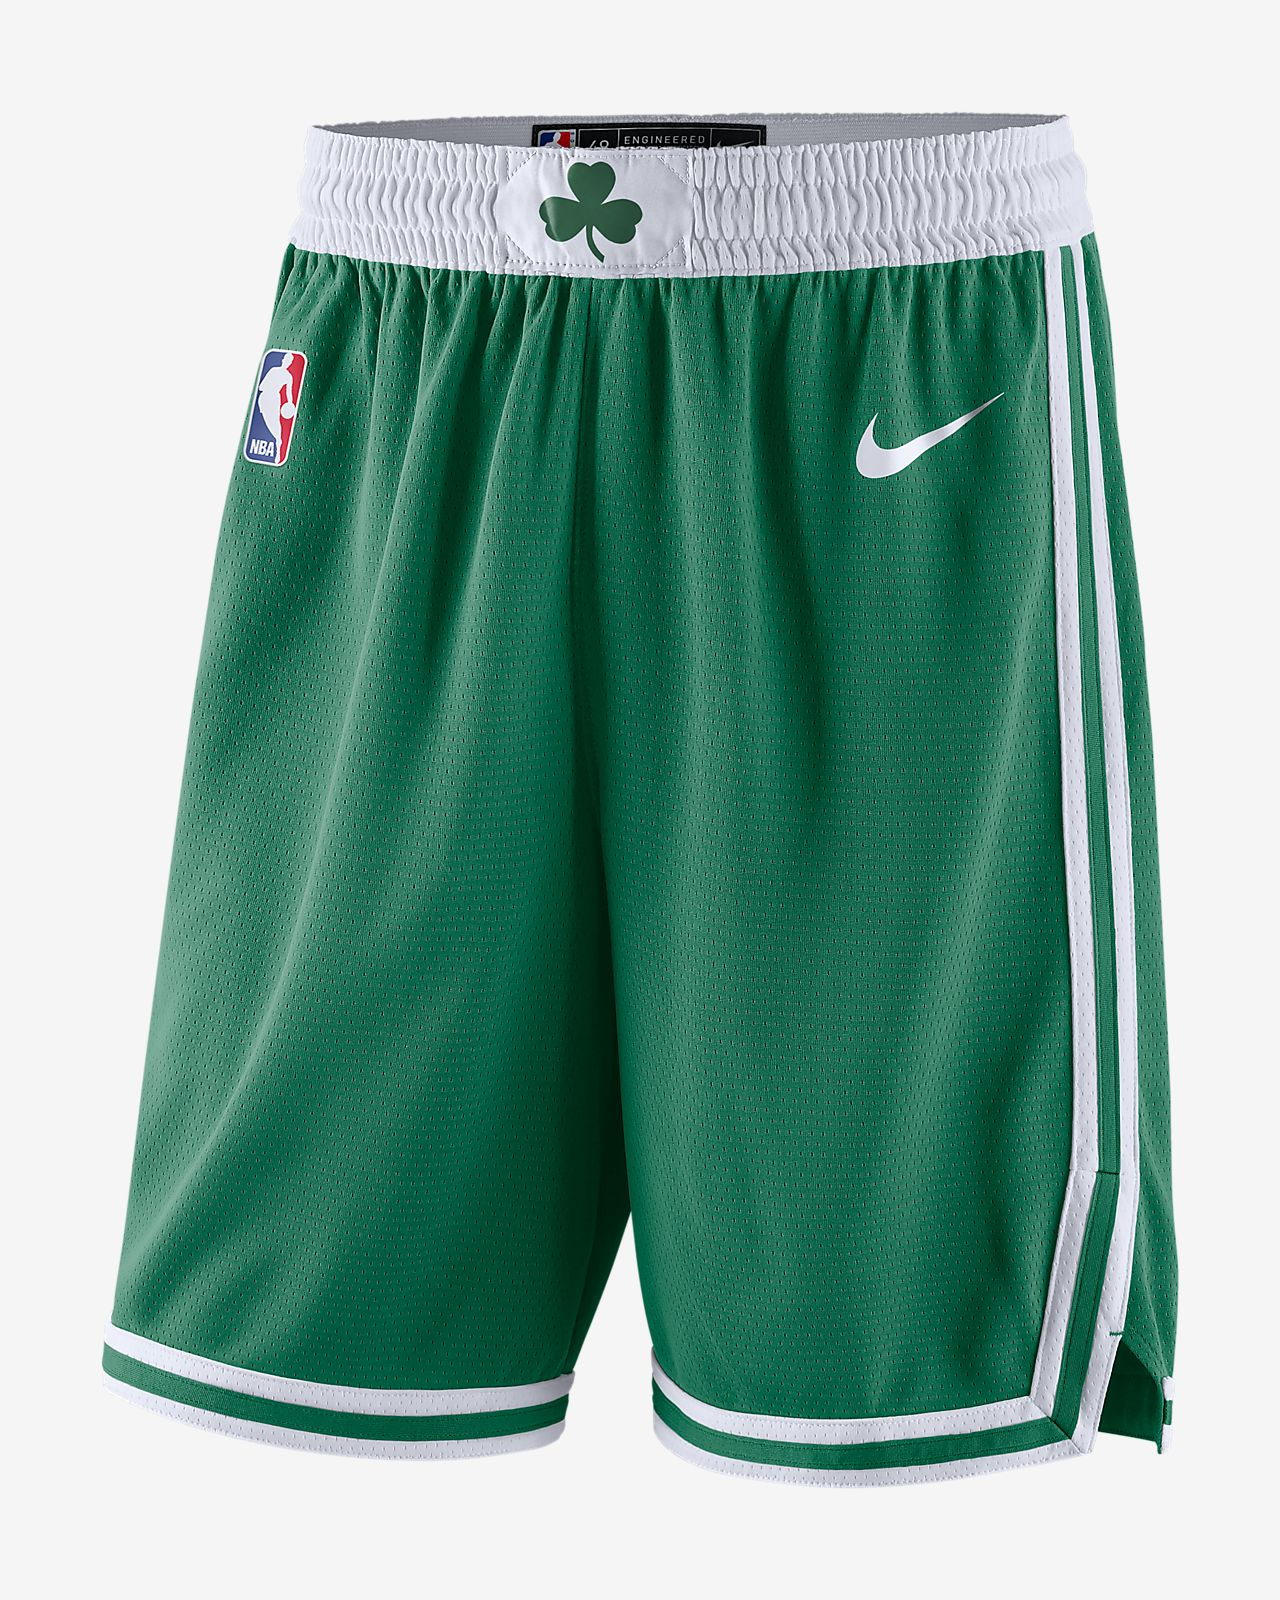 Boston Celtics Icon Edition Swingman Men's Nike NBA Shorts